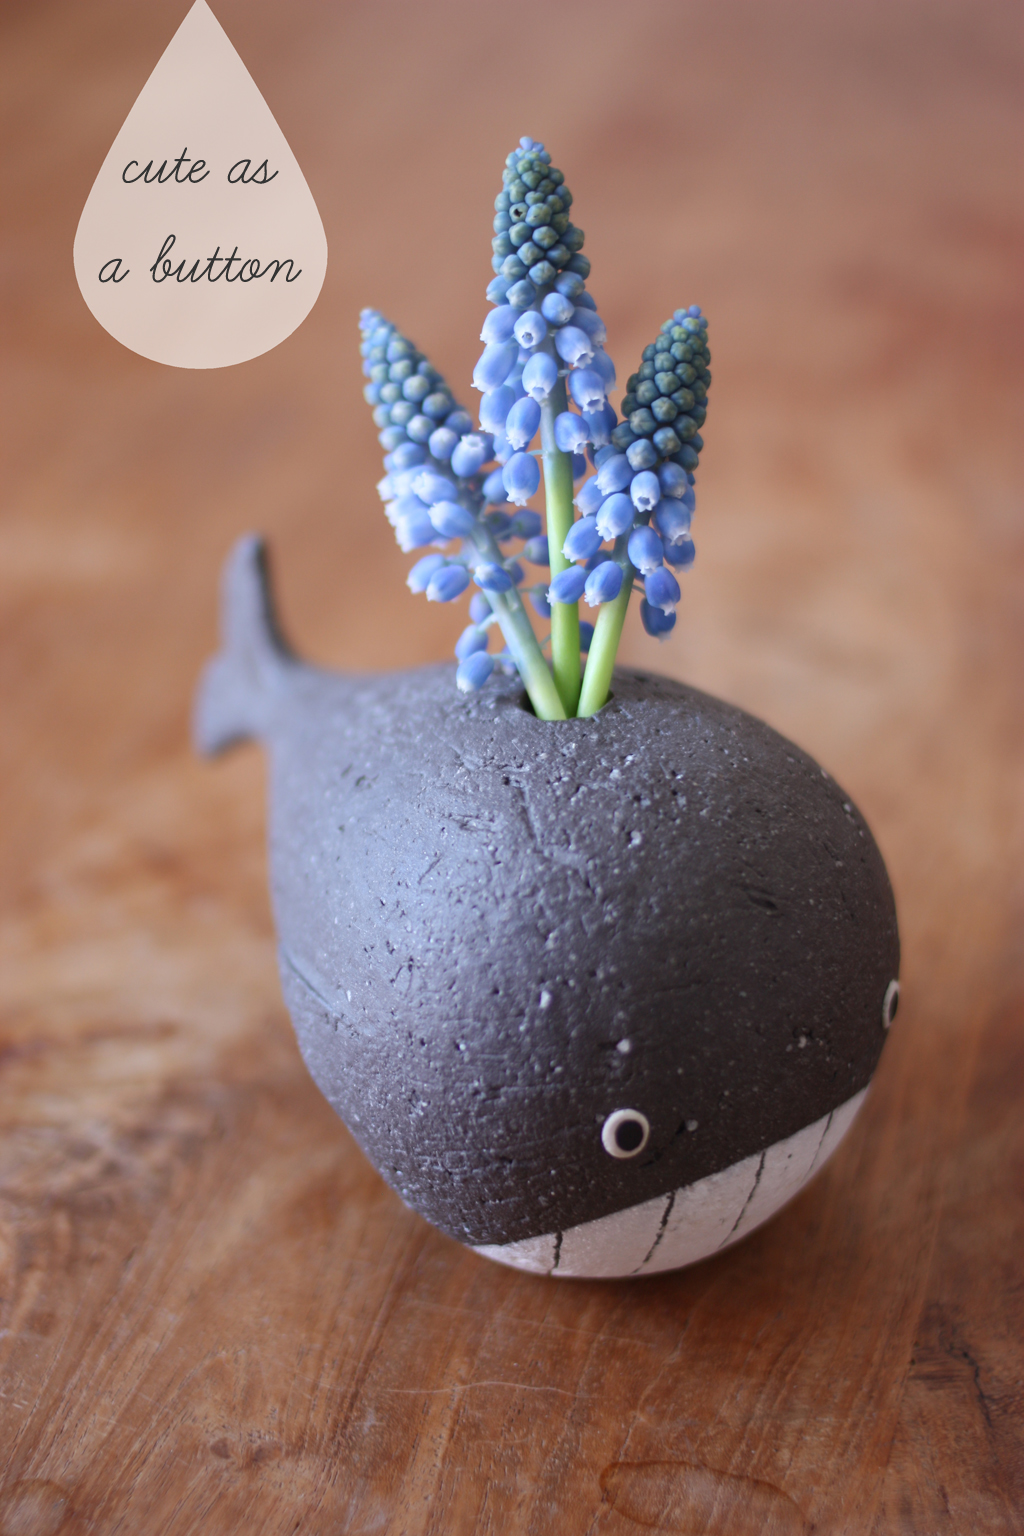 little whale vase from Japan - vase story by madame love